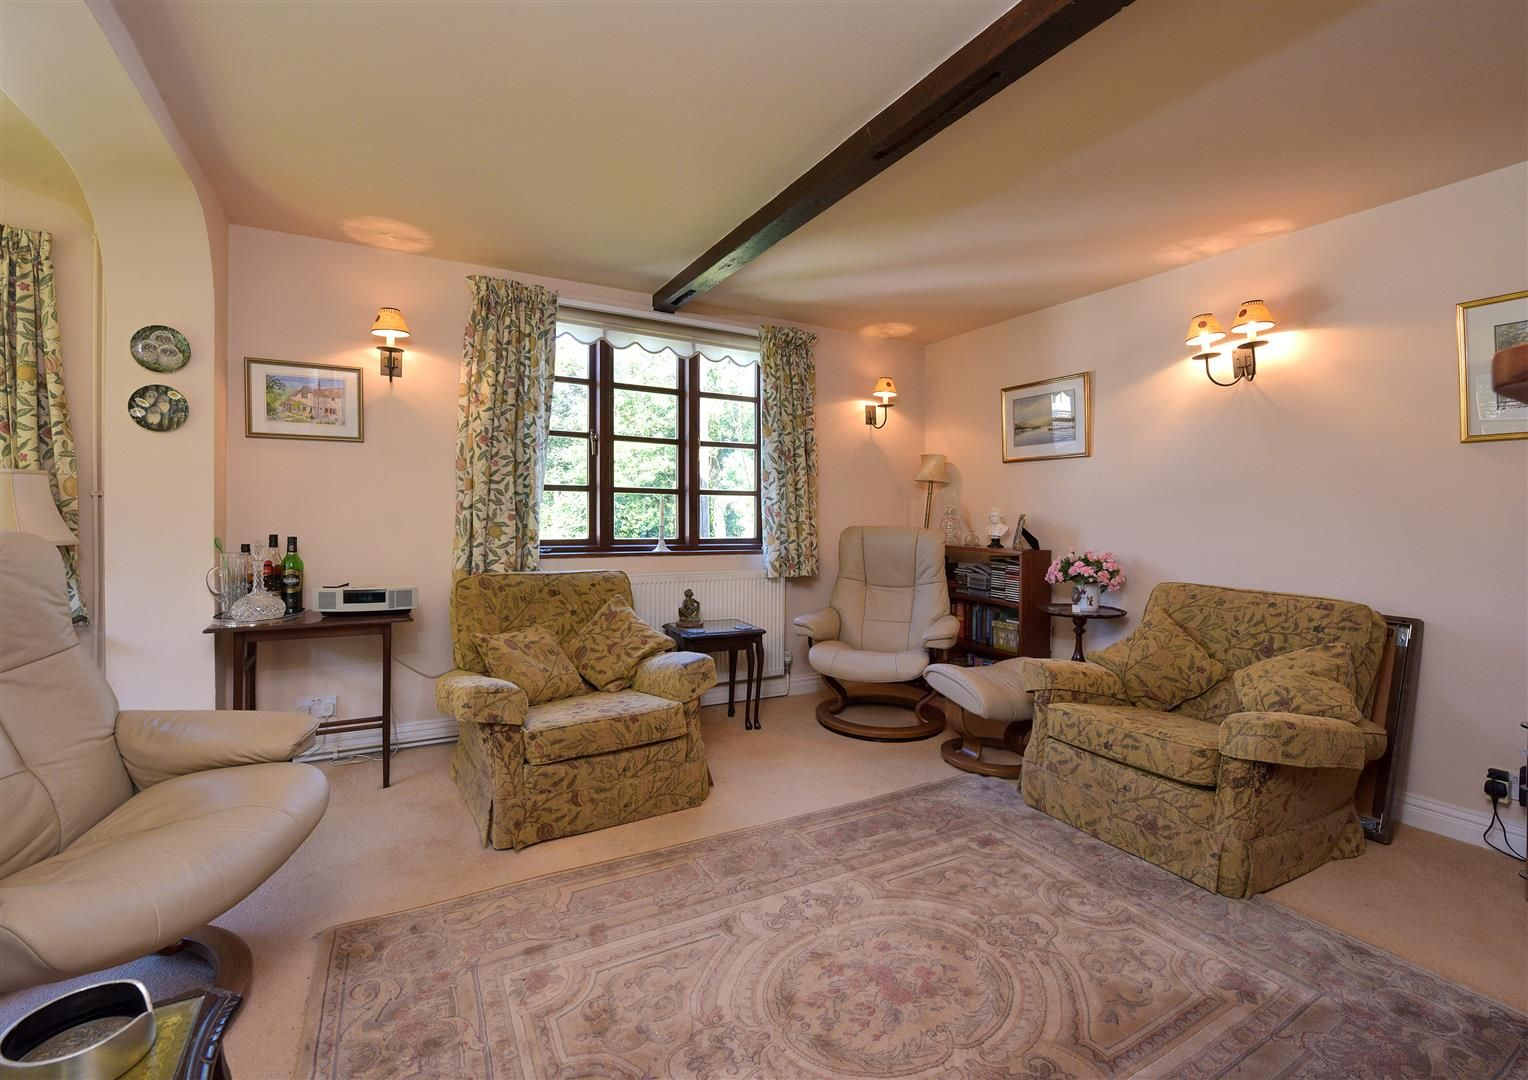 2 bed semi-detached for sale in Clent  - Property Image 3